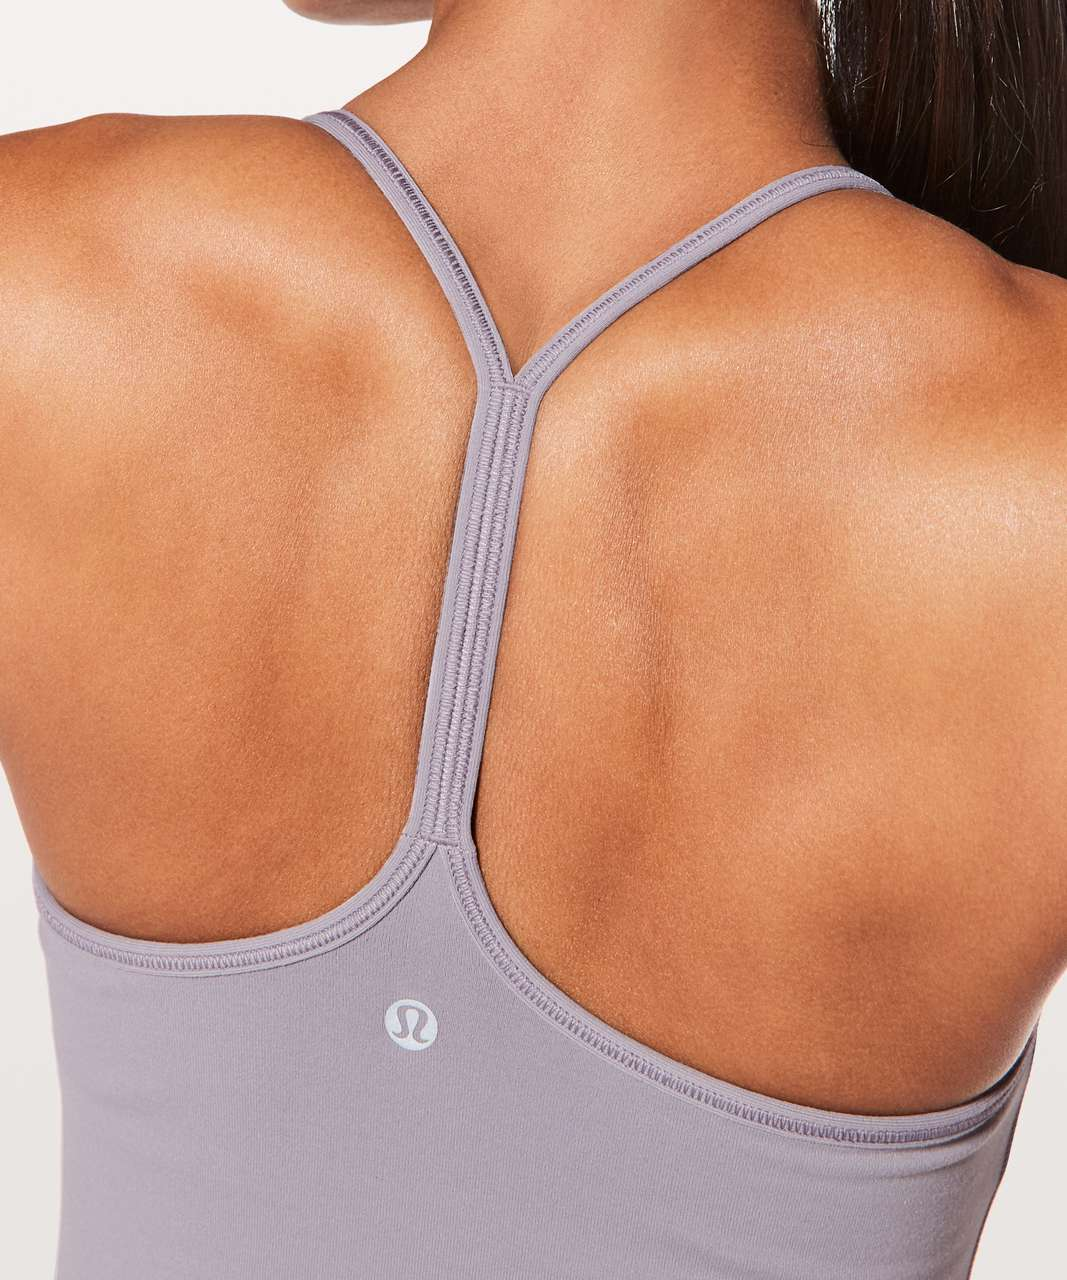 Lululemon Power Pose Tank *Light Support For A/B Cup - Dusty Dawn